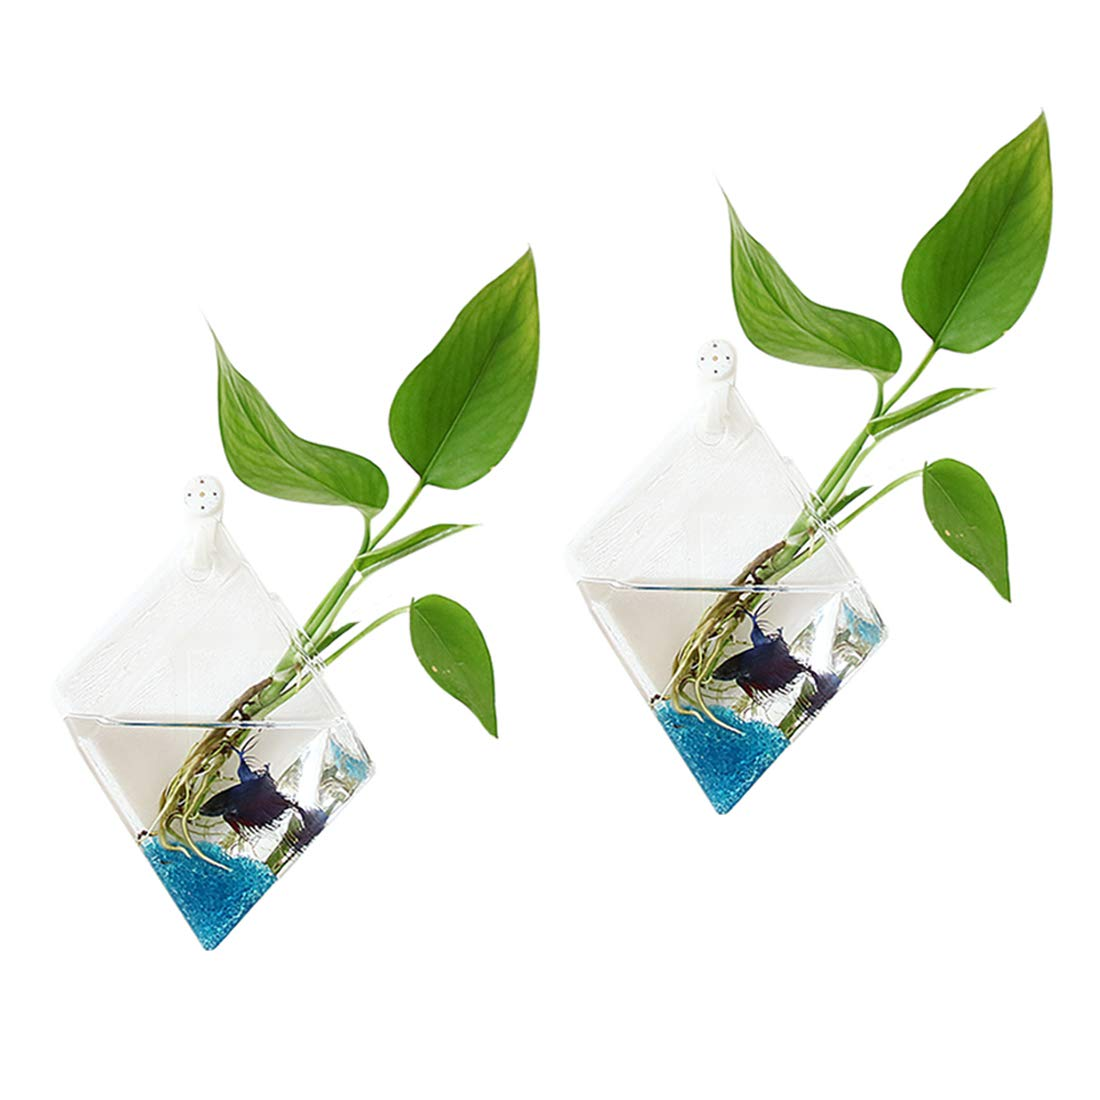 Ivolador 2PCS Wall Mount Hanging Glass Plant Terrarium Diamond Shape Perfect for Home Garden Decor